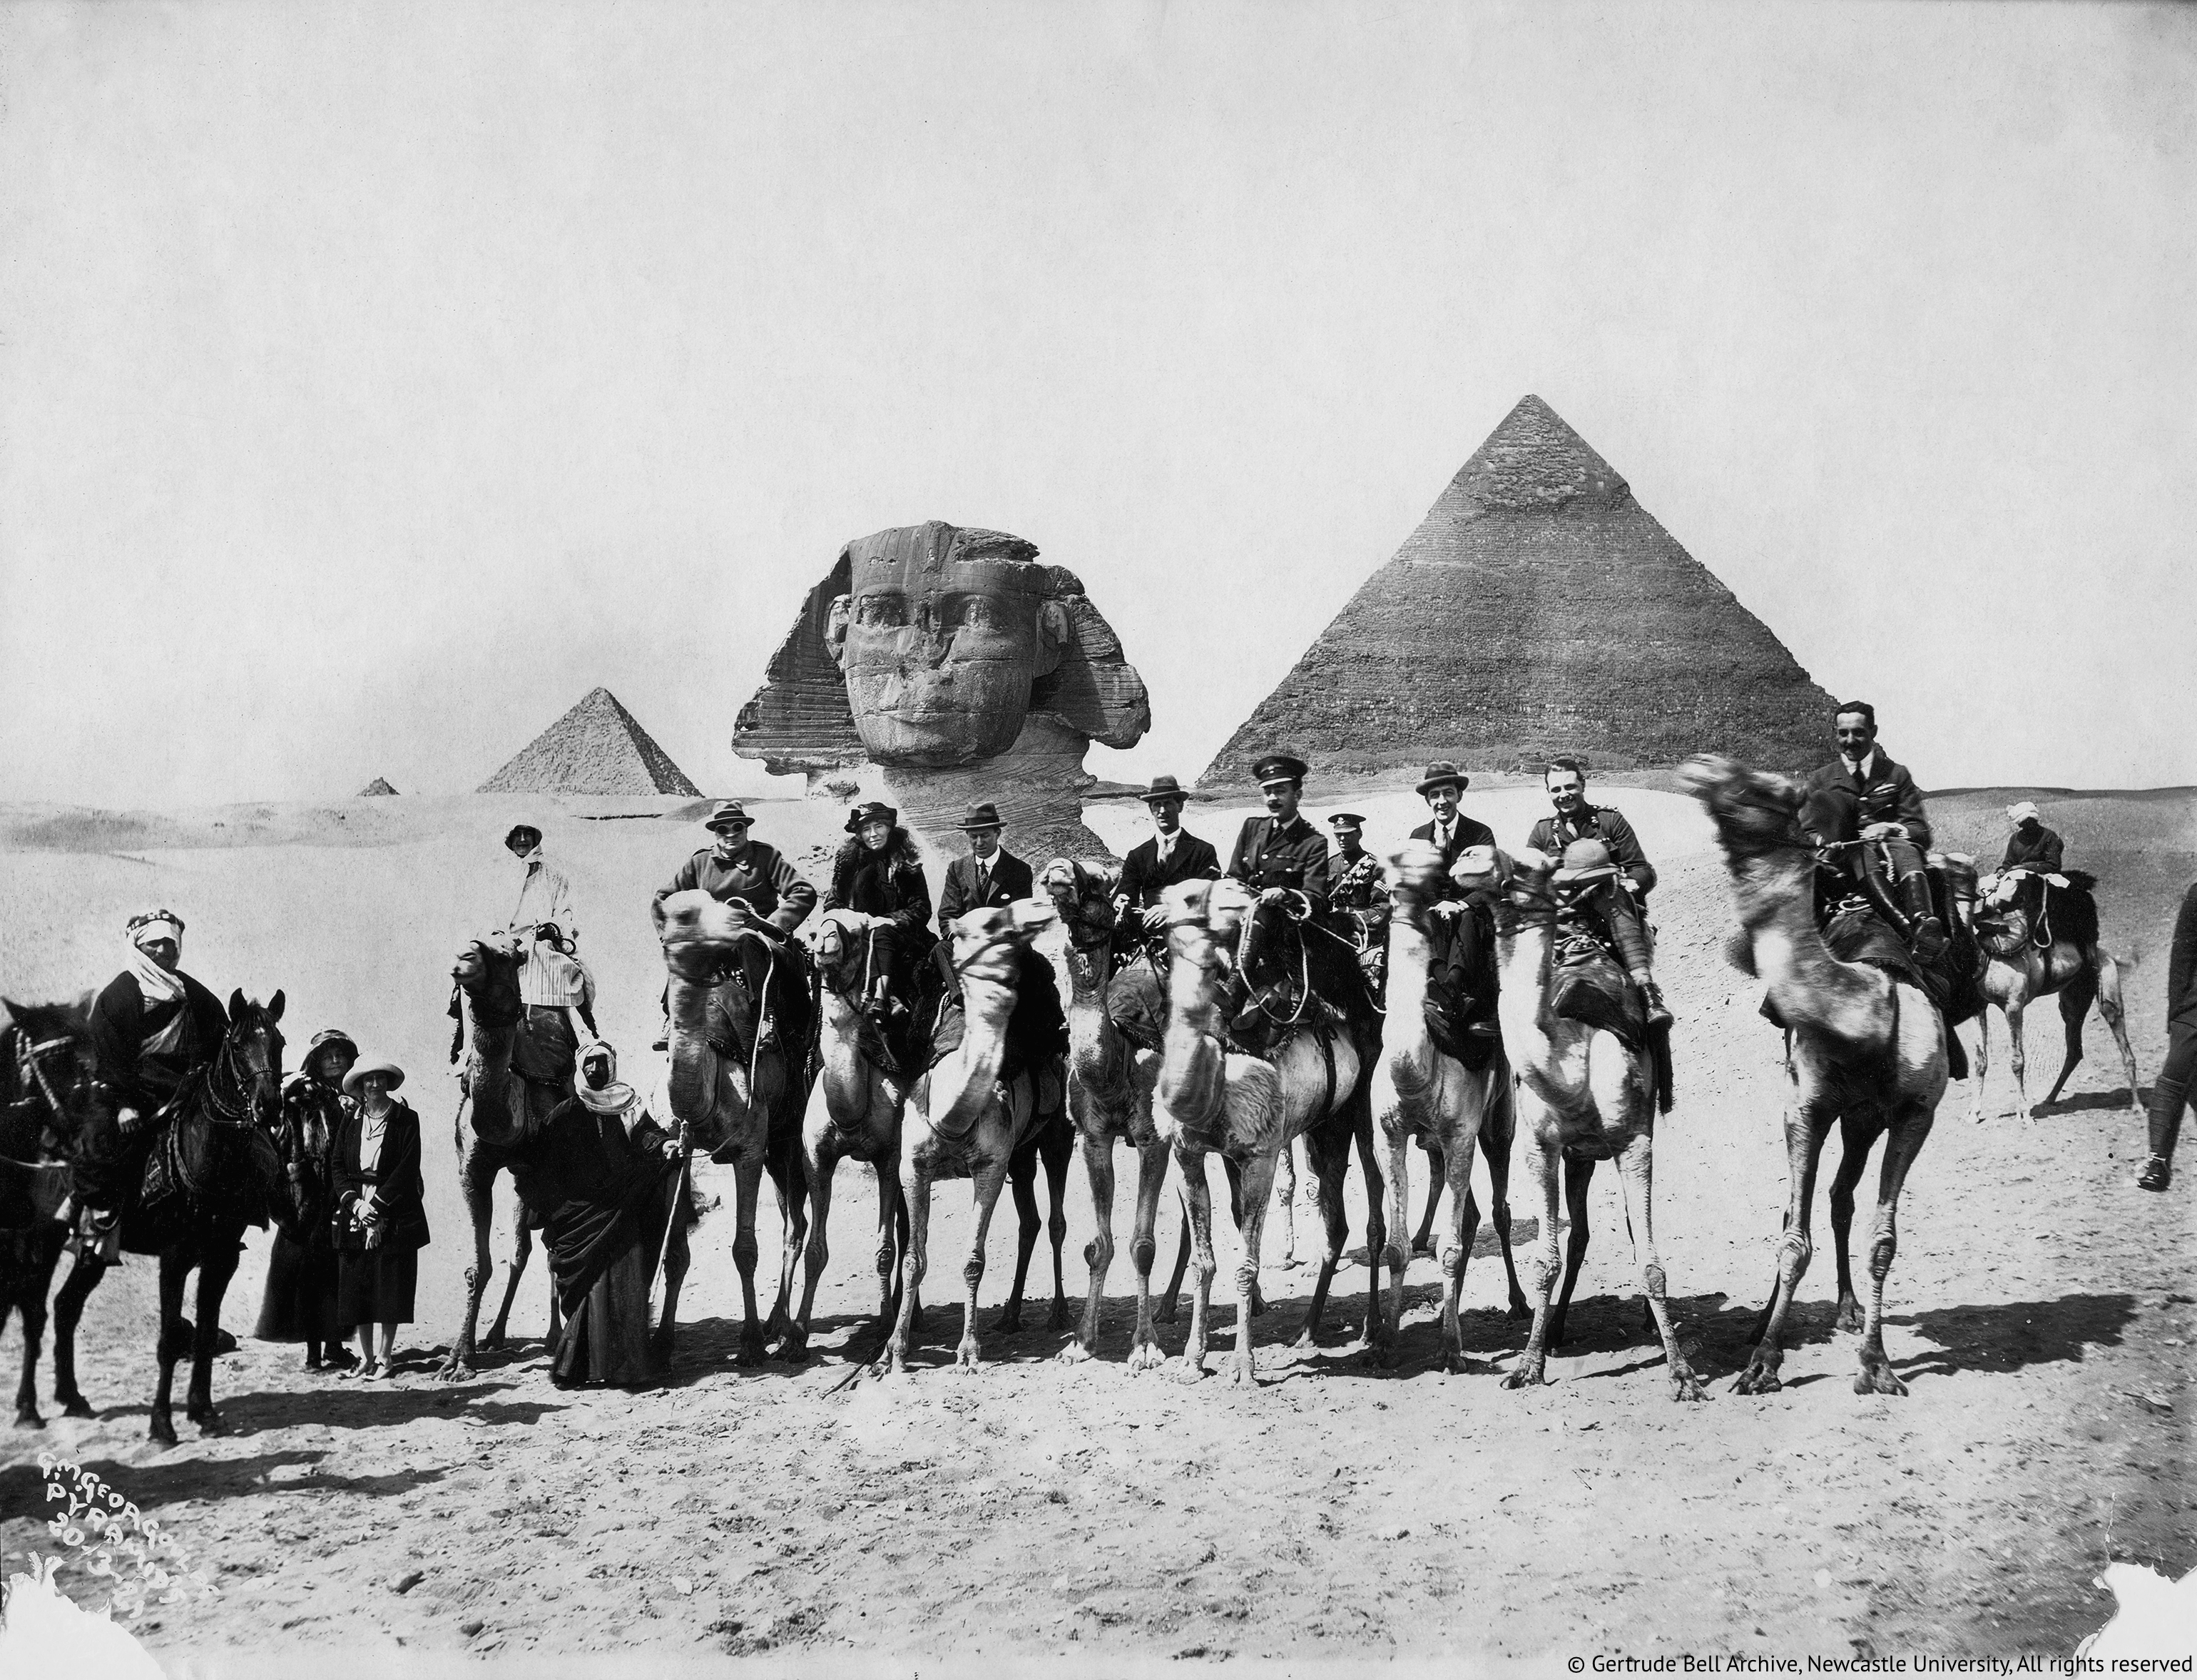 Gertrude-Bell-seated-between-Winston-Churchill-and-T.E.Lawrence-Cairo-Conference-1921-02